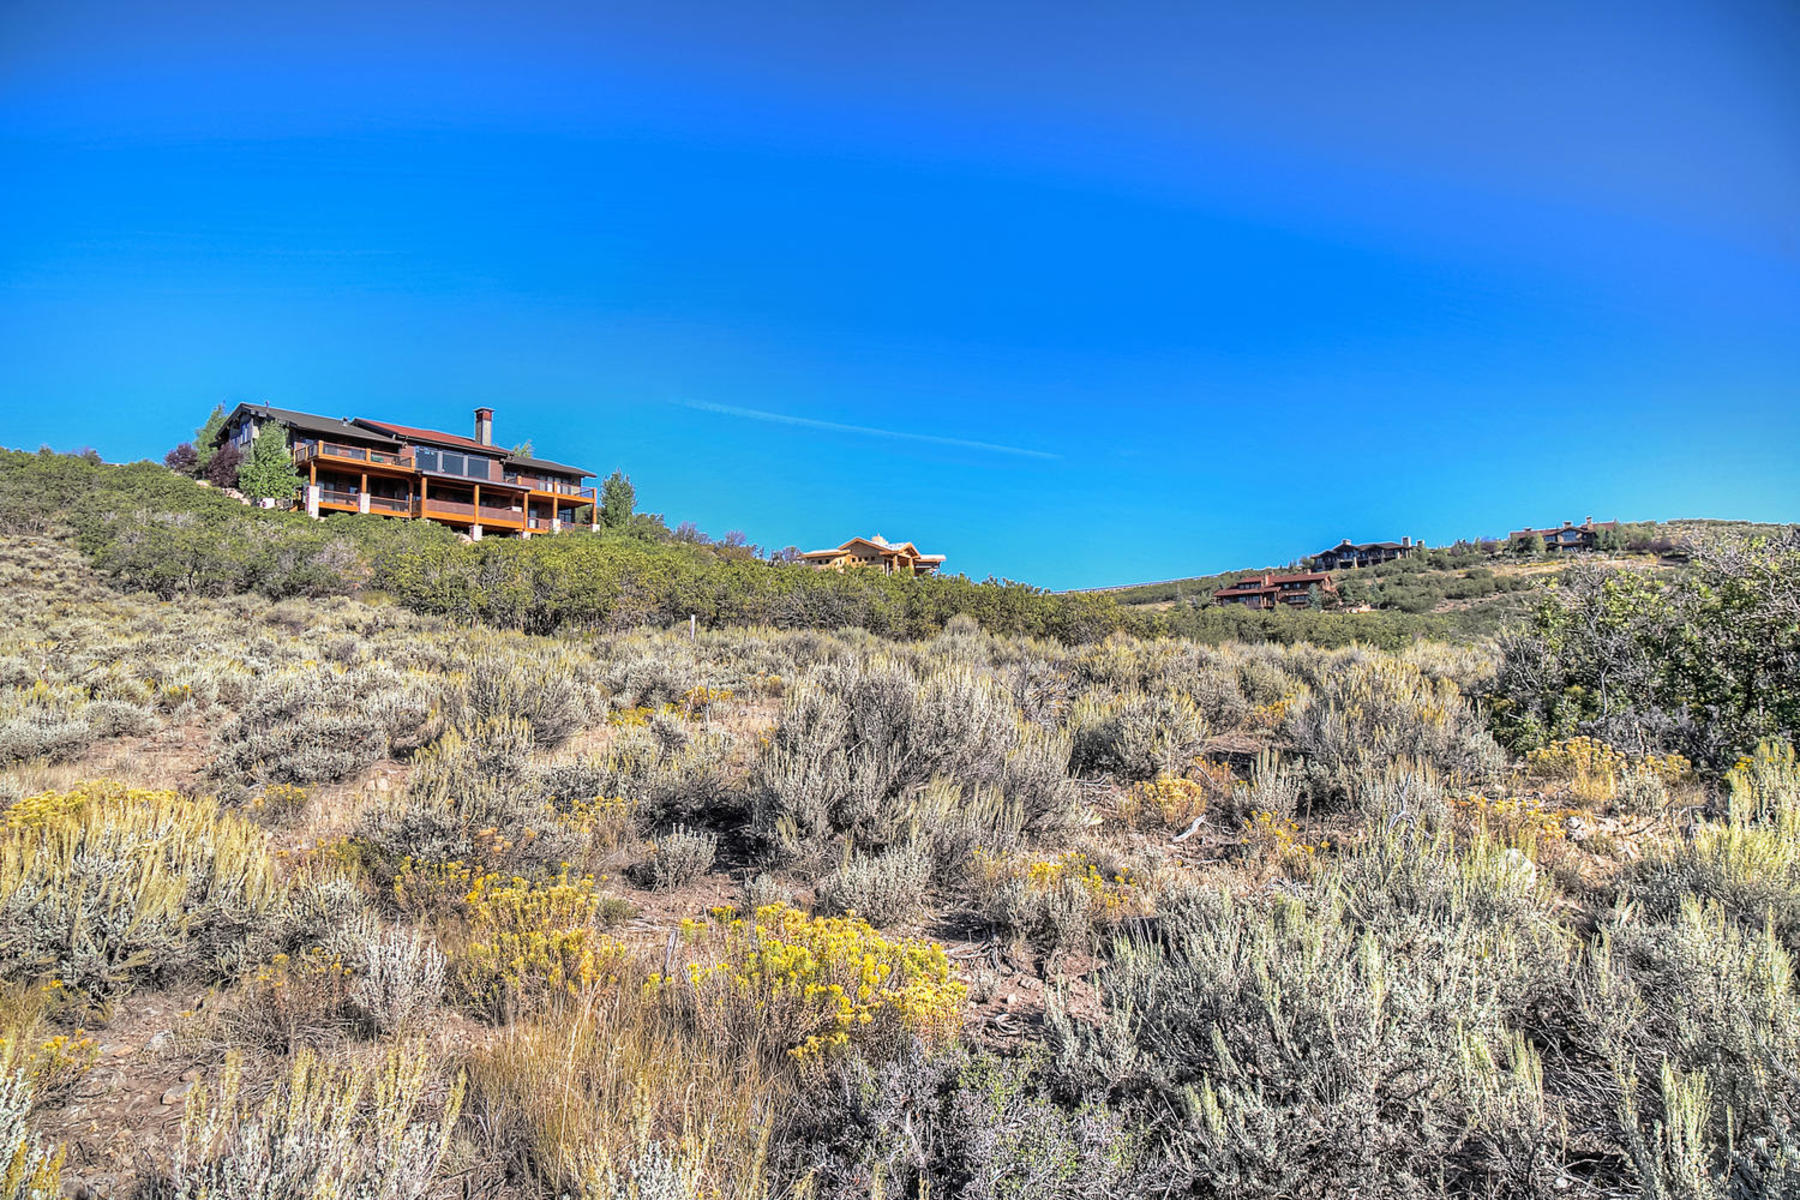 Terreno por un Venta en Gorgeous Uintah Mountain View 7865 Moon Dog Ct Lot 86 Park City, Utah, 84098 Estados Unidos